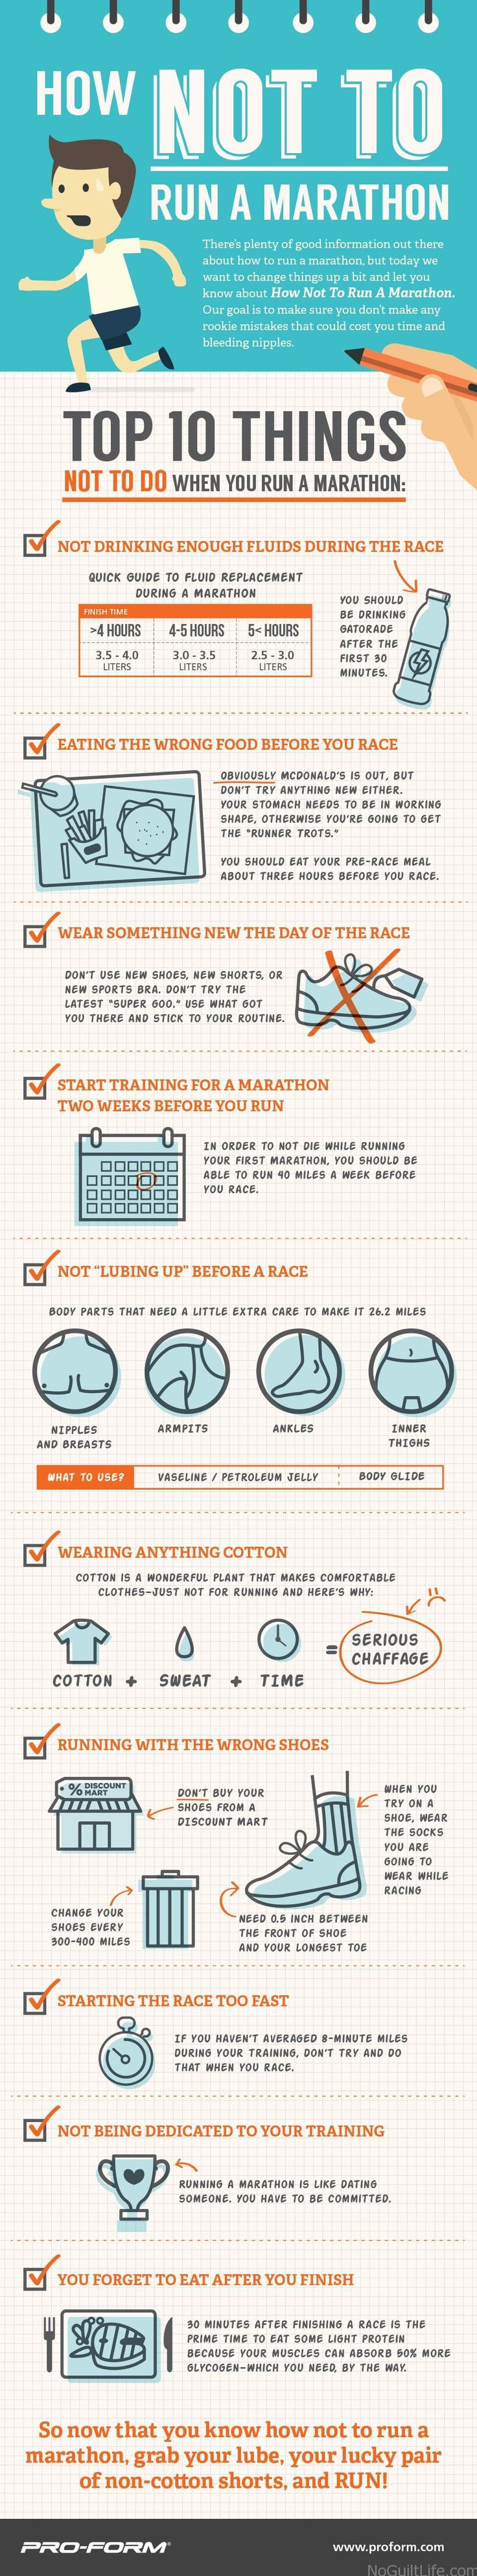 Get healthy, they said. Running will make you fit, they said. Run a marathon, they said. It will be fun, they said! But how do you train for a marathon correctly? I have no idea- but here's our list telling you how NOT to train for a marathon.